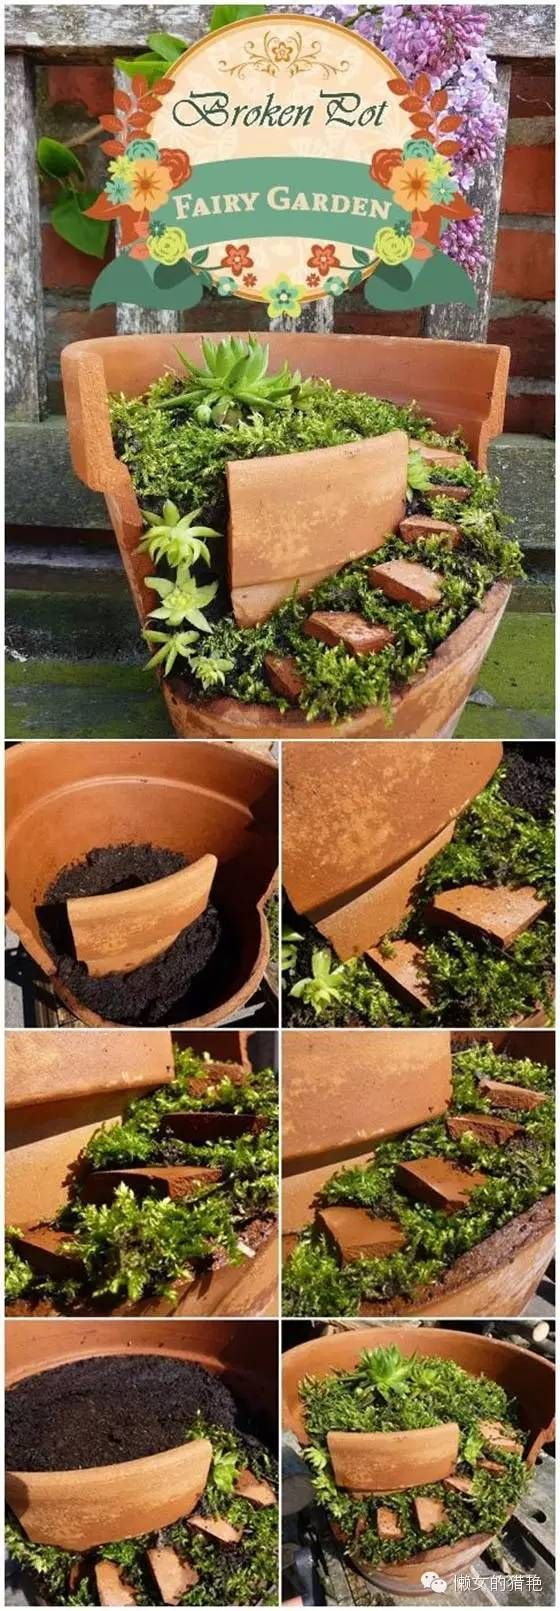 12 ideas originales para crear un jard n de hadas for Jardines pequenos originales